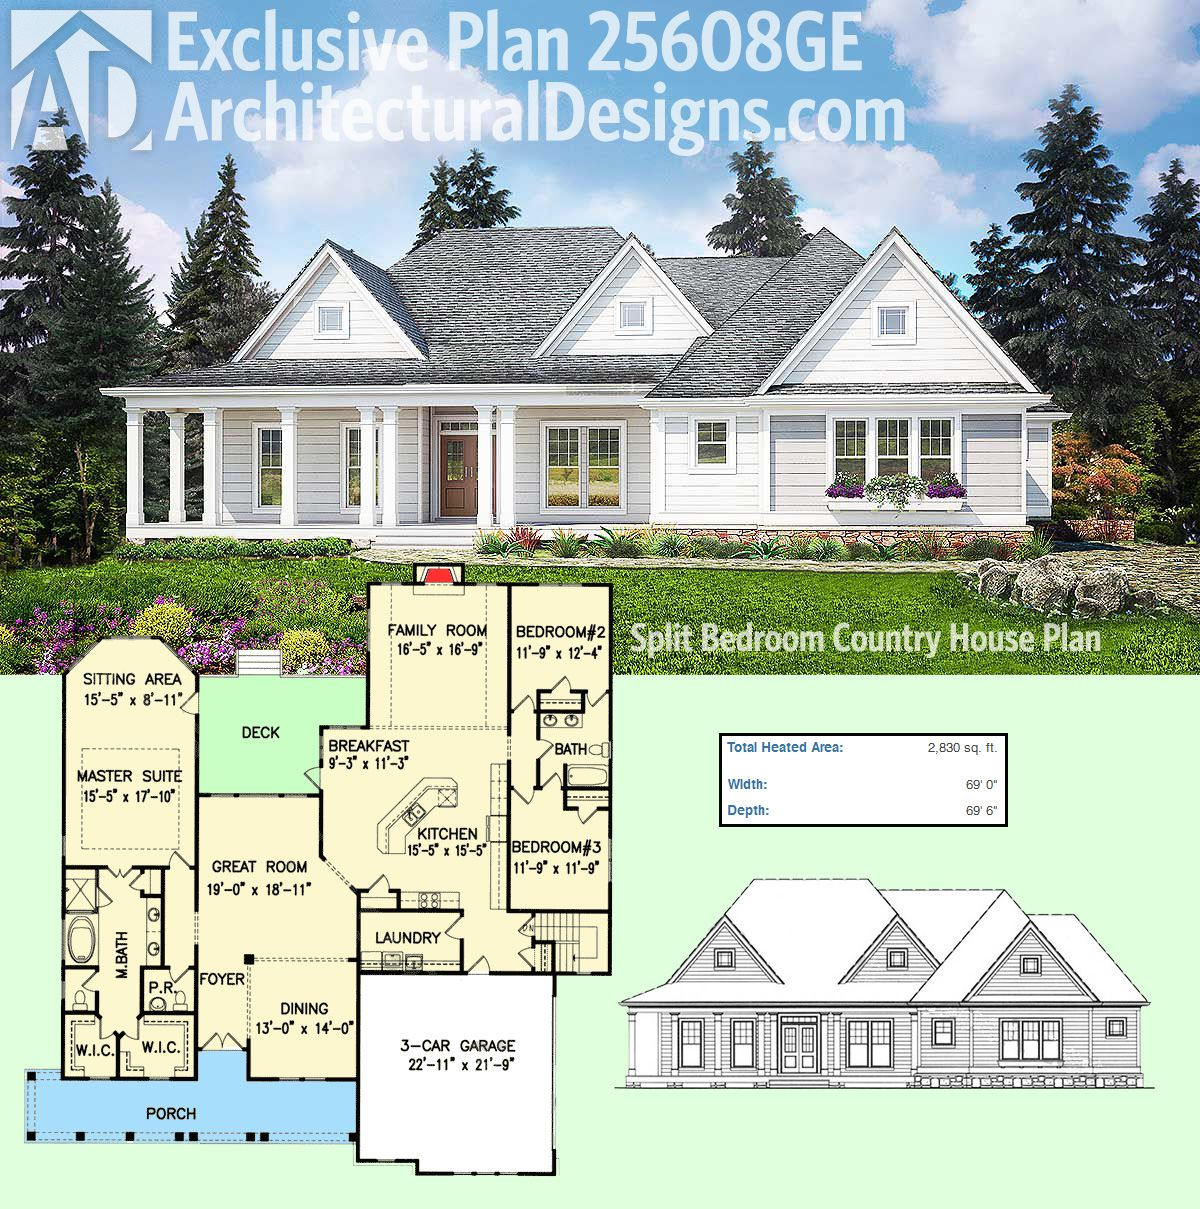 Plan 25608GE Split Bedroom Country House Plan House